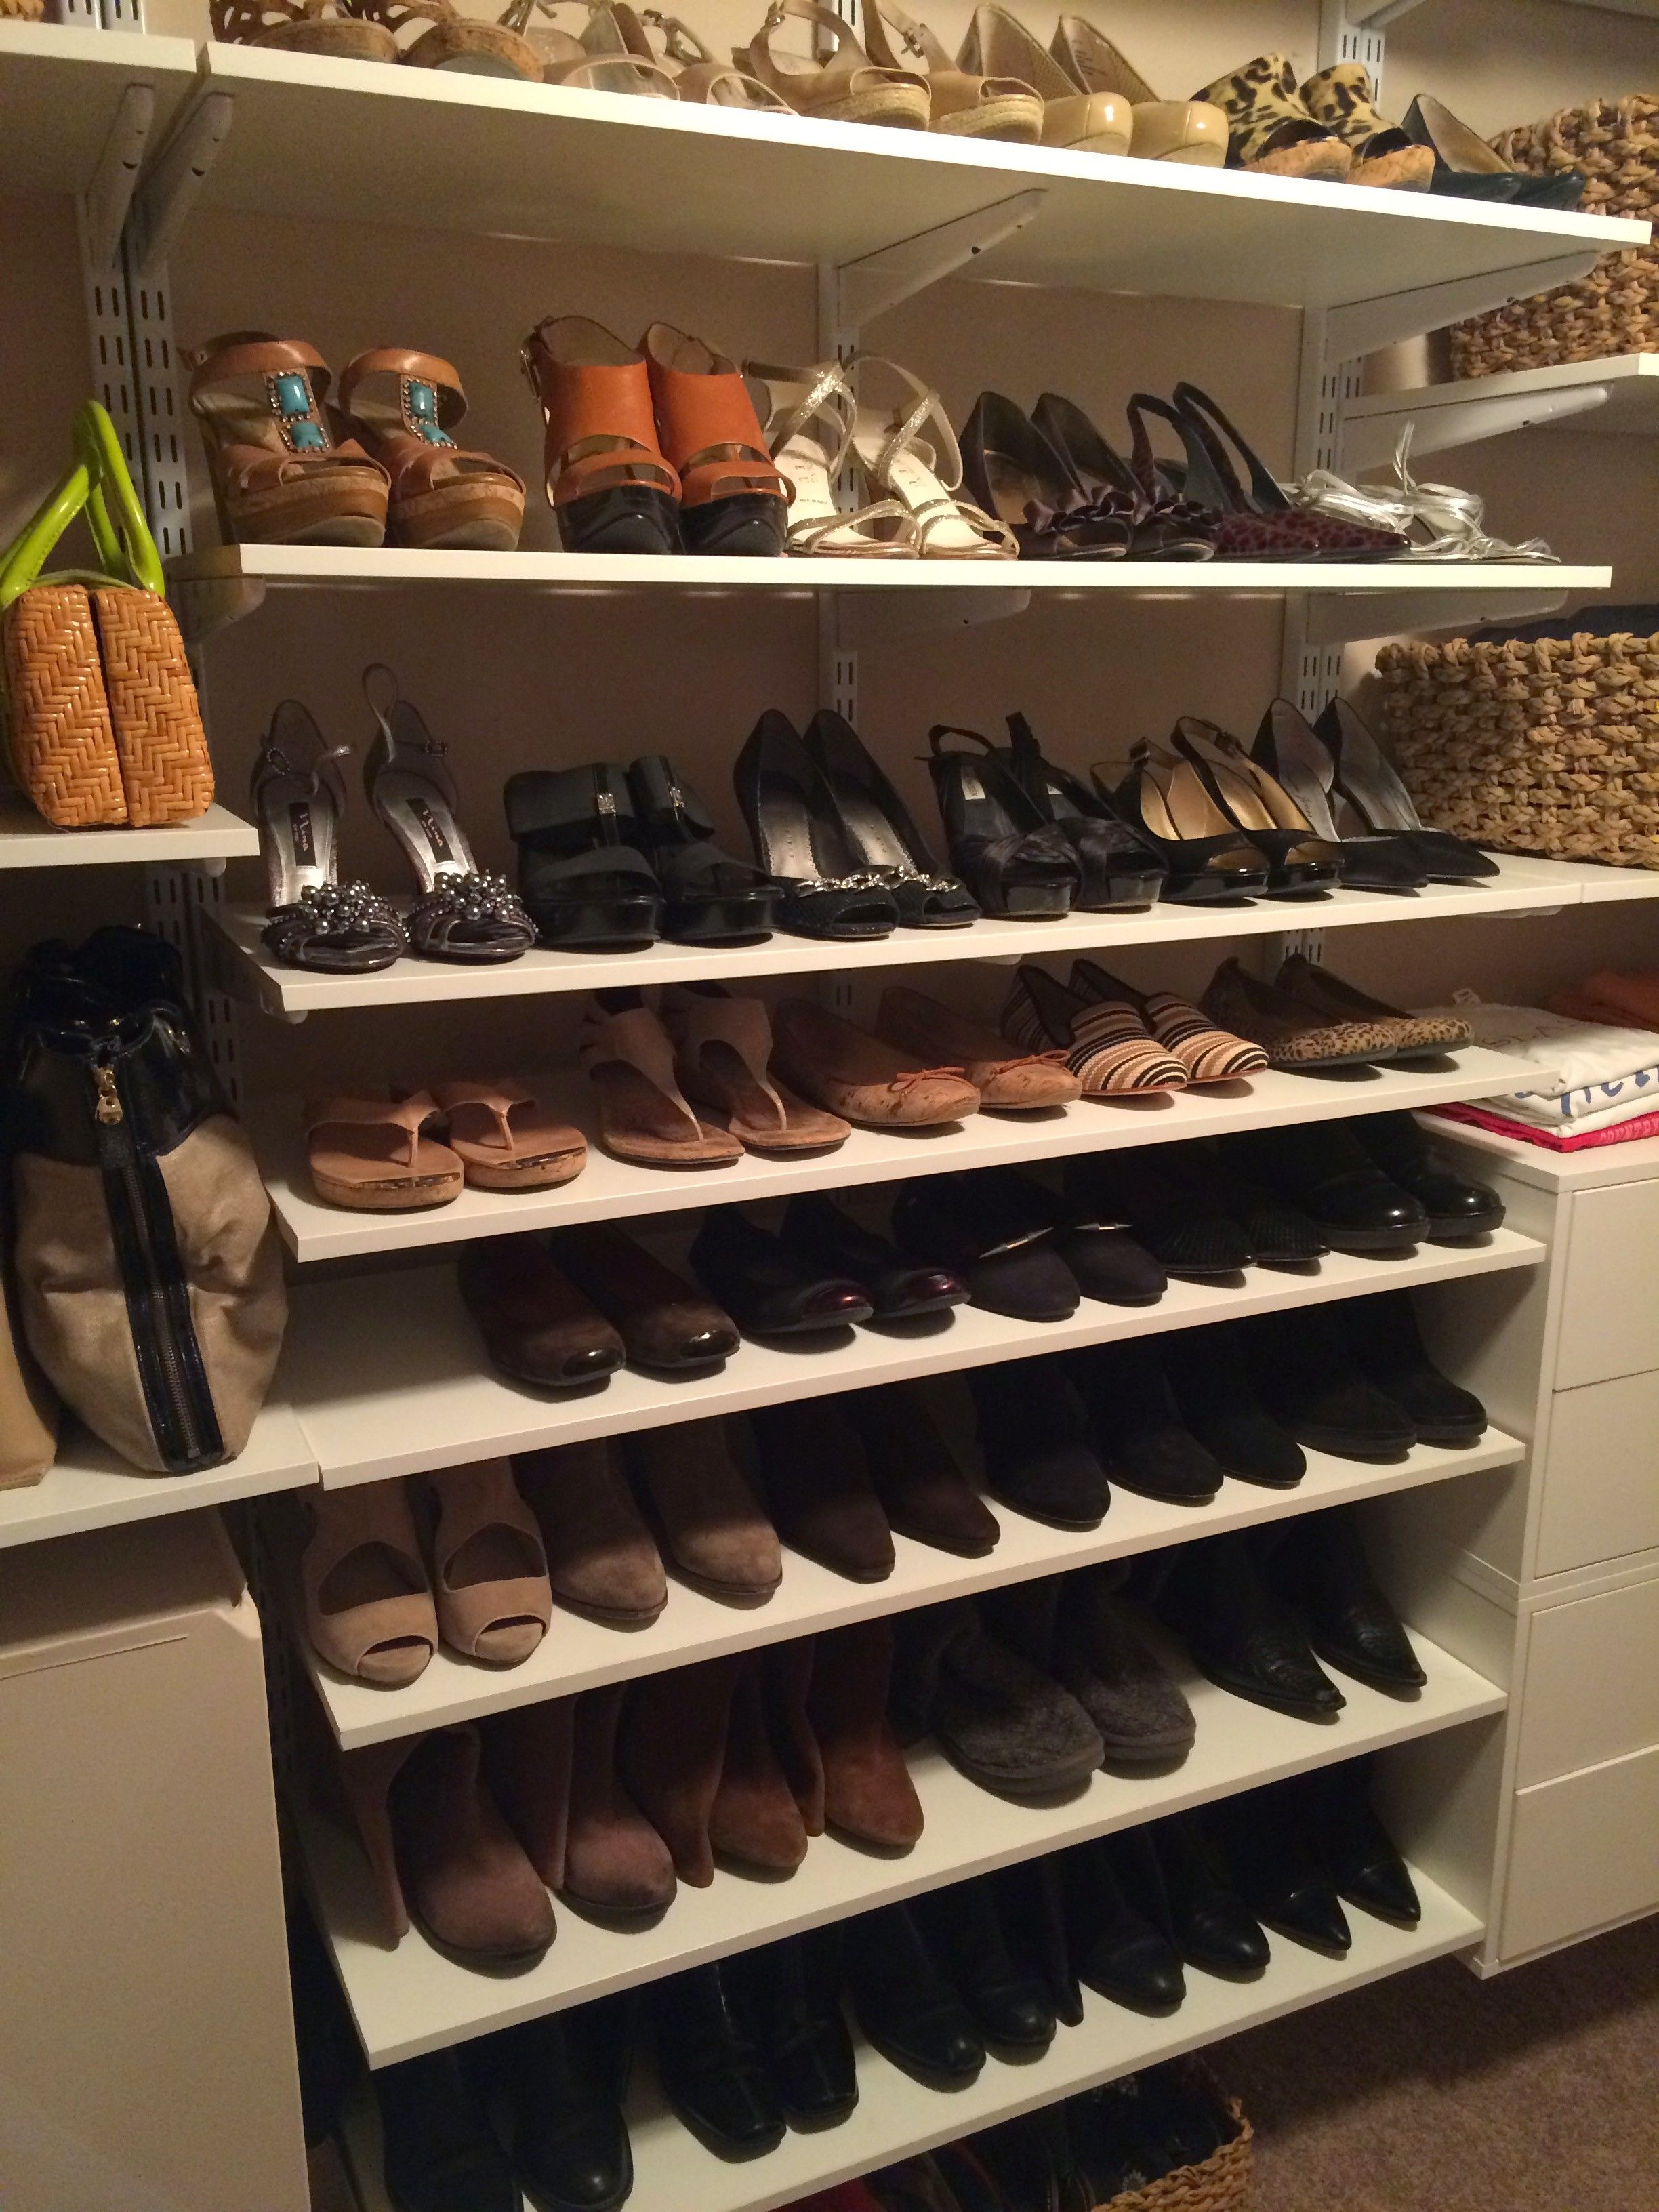 How To And Organize Shoes In A Closet Home Organization Tipsstorage